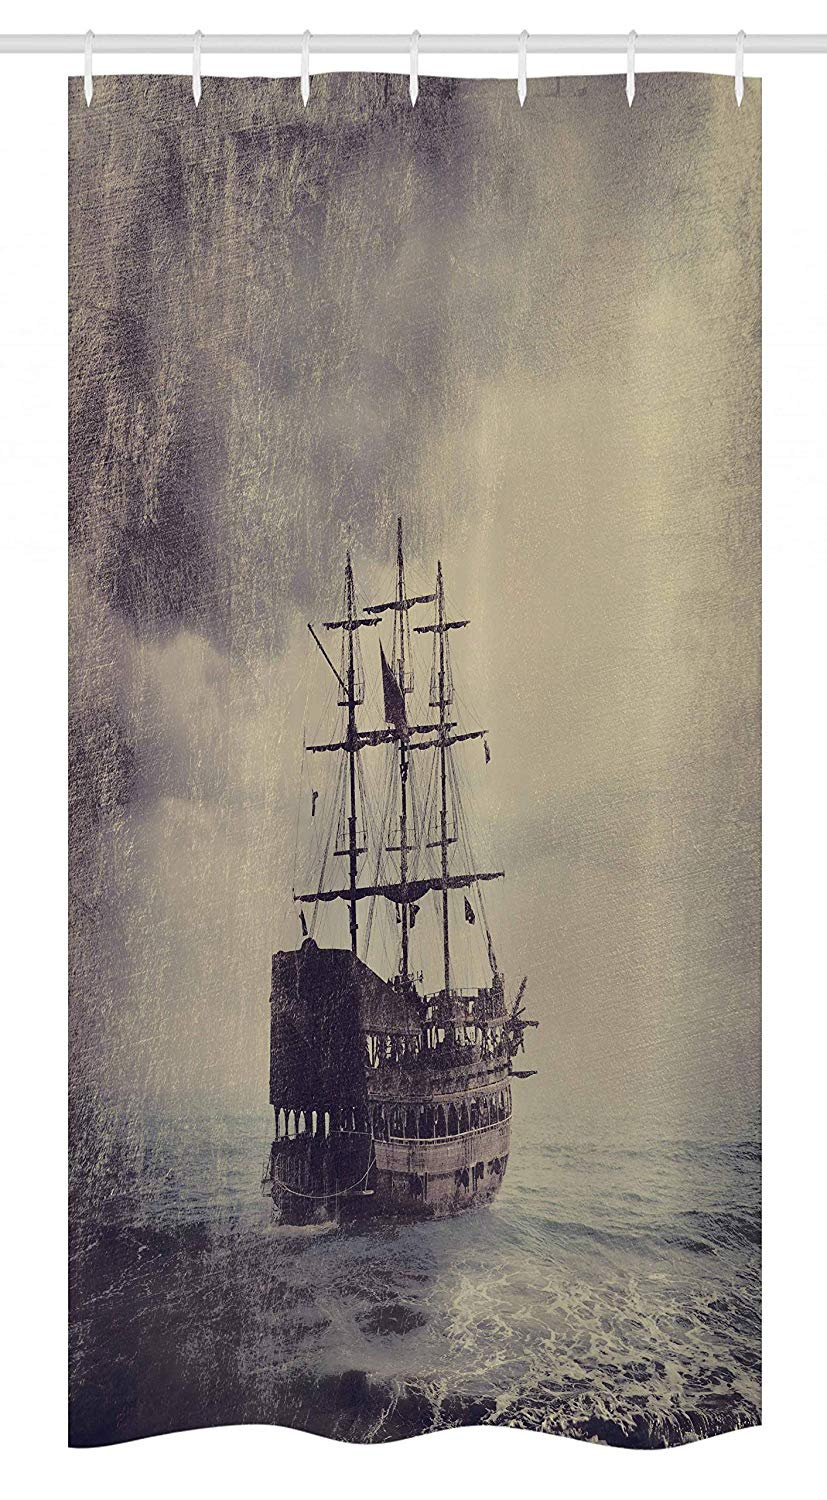 "Ambesonne Nautical Stall Shower Curtain, Old Pirate Ship in The Sea Historical Cruise Retro Voyage Grunge Style Art, Fabric Bathroom Decor Set with Hooks, 36"" X 72"", Tan Plum"